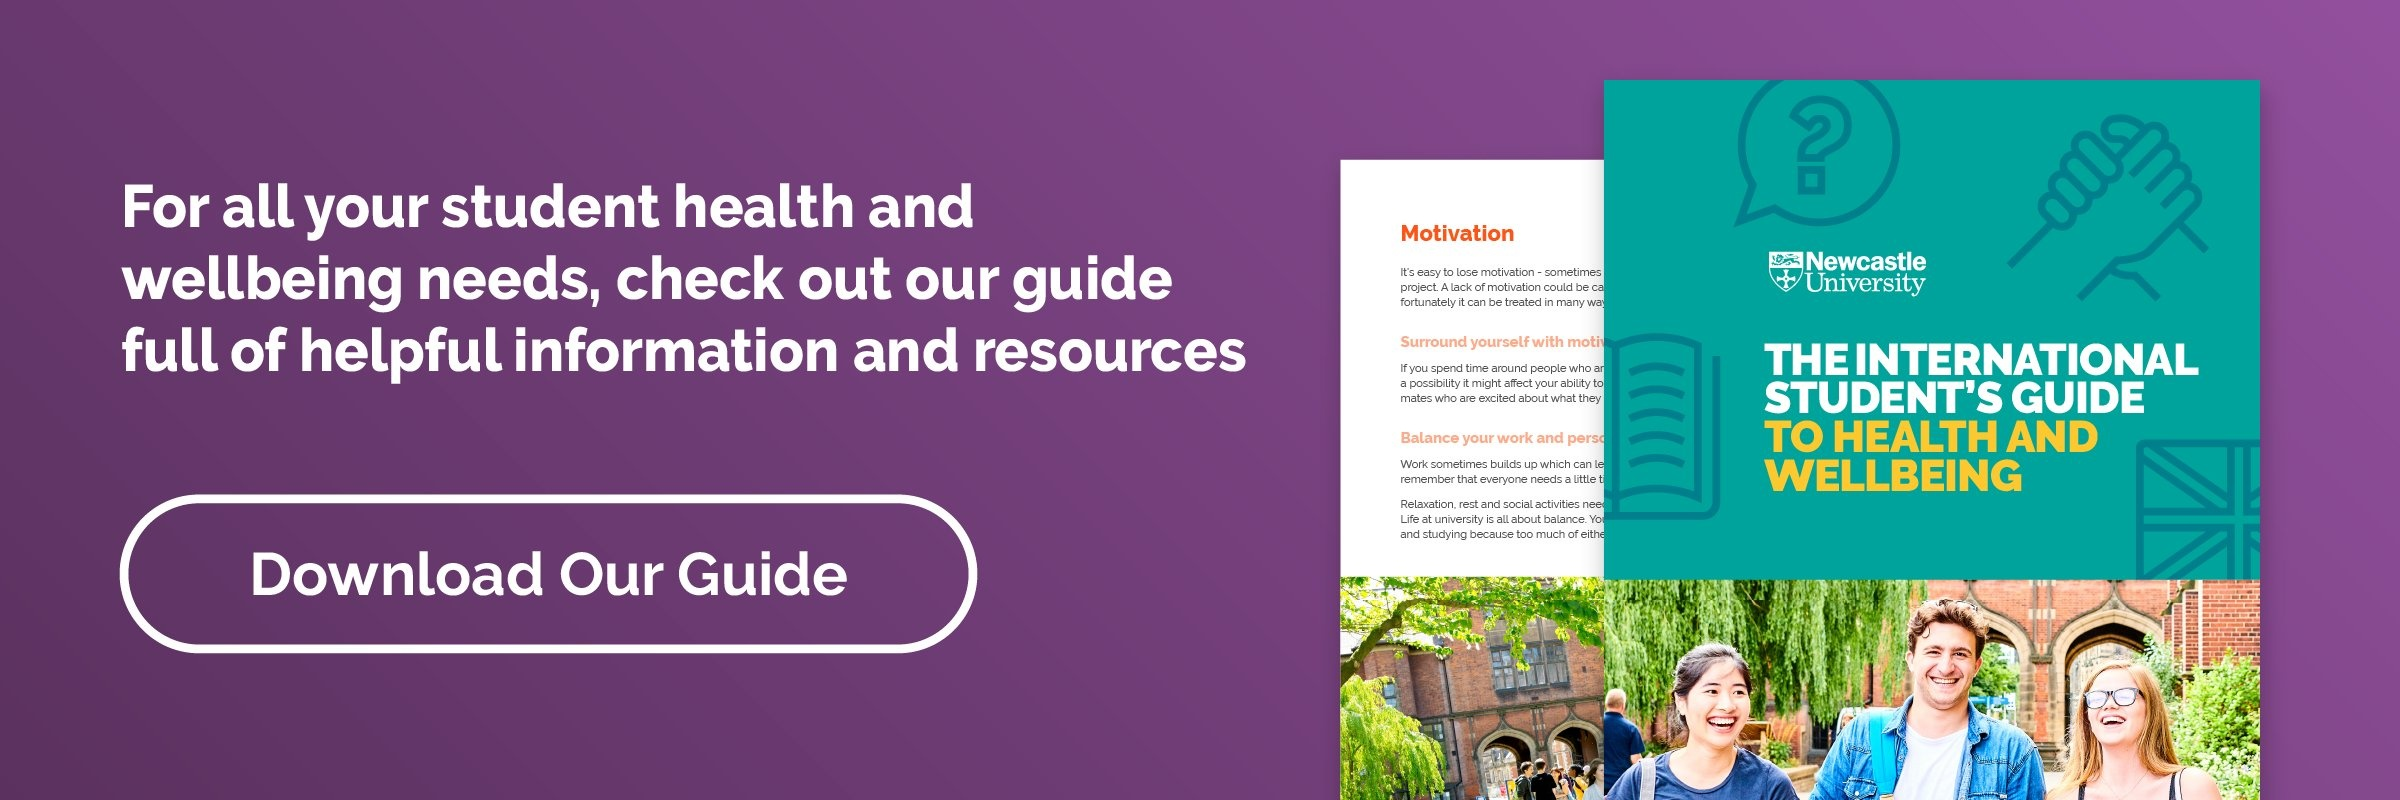 International Student Guide to Health and Wellbeing CTA